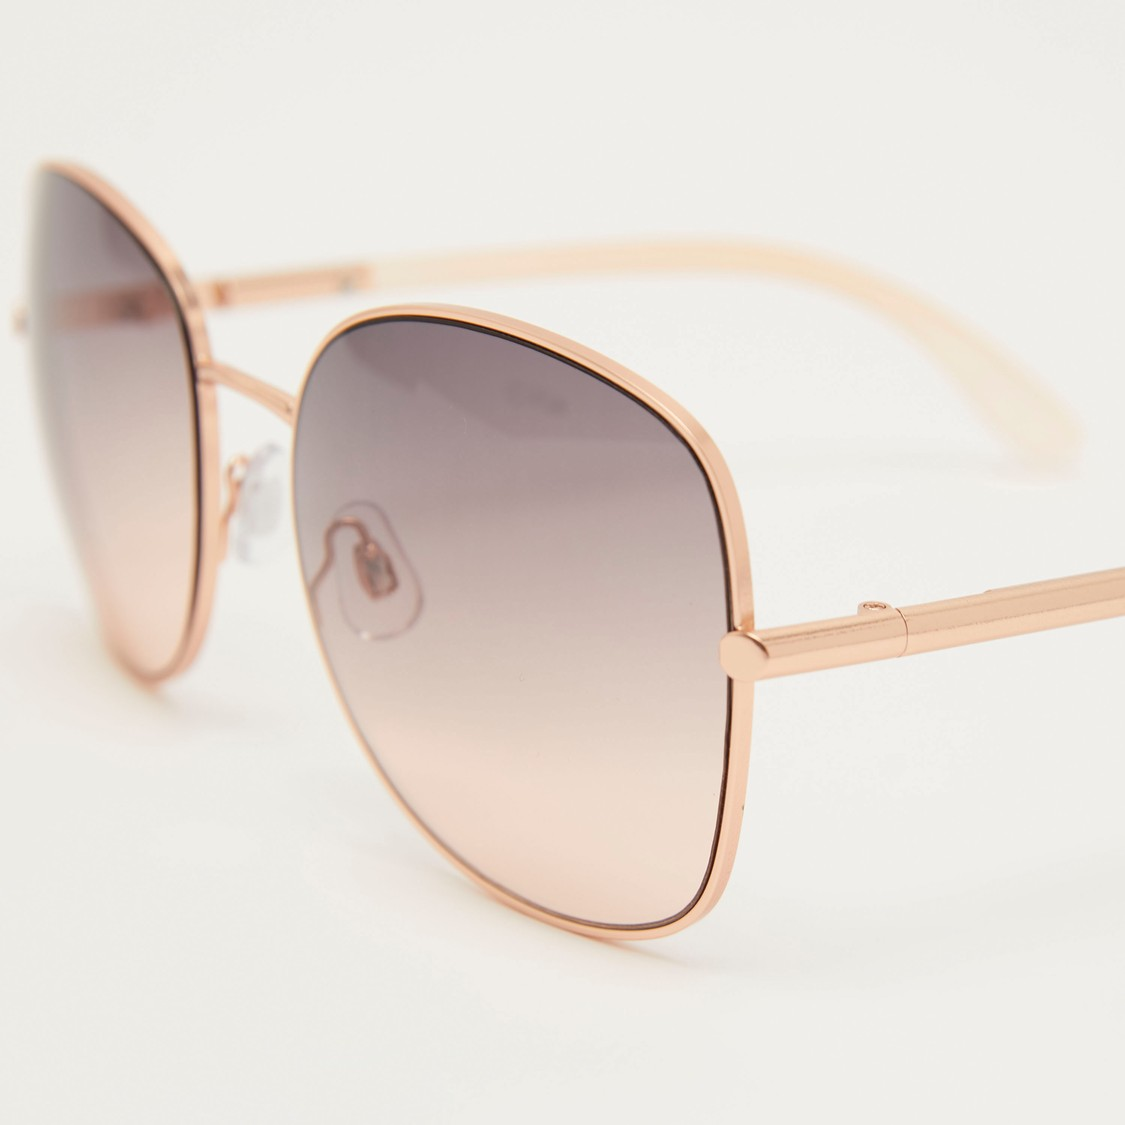 Gradient Metal Sunglasses with Nose Pads